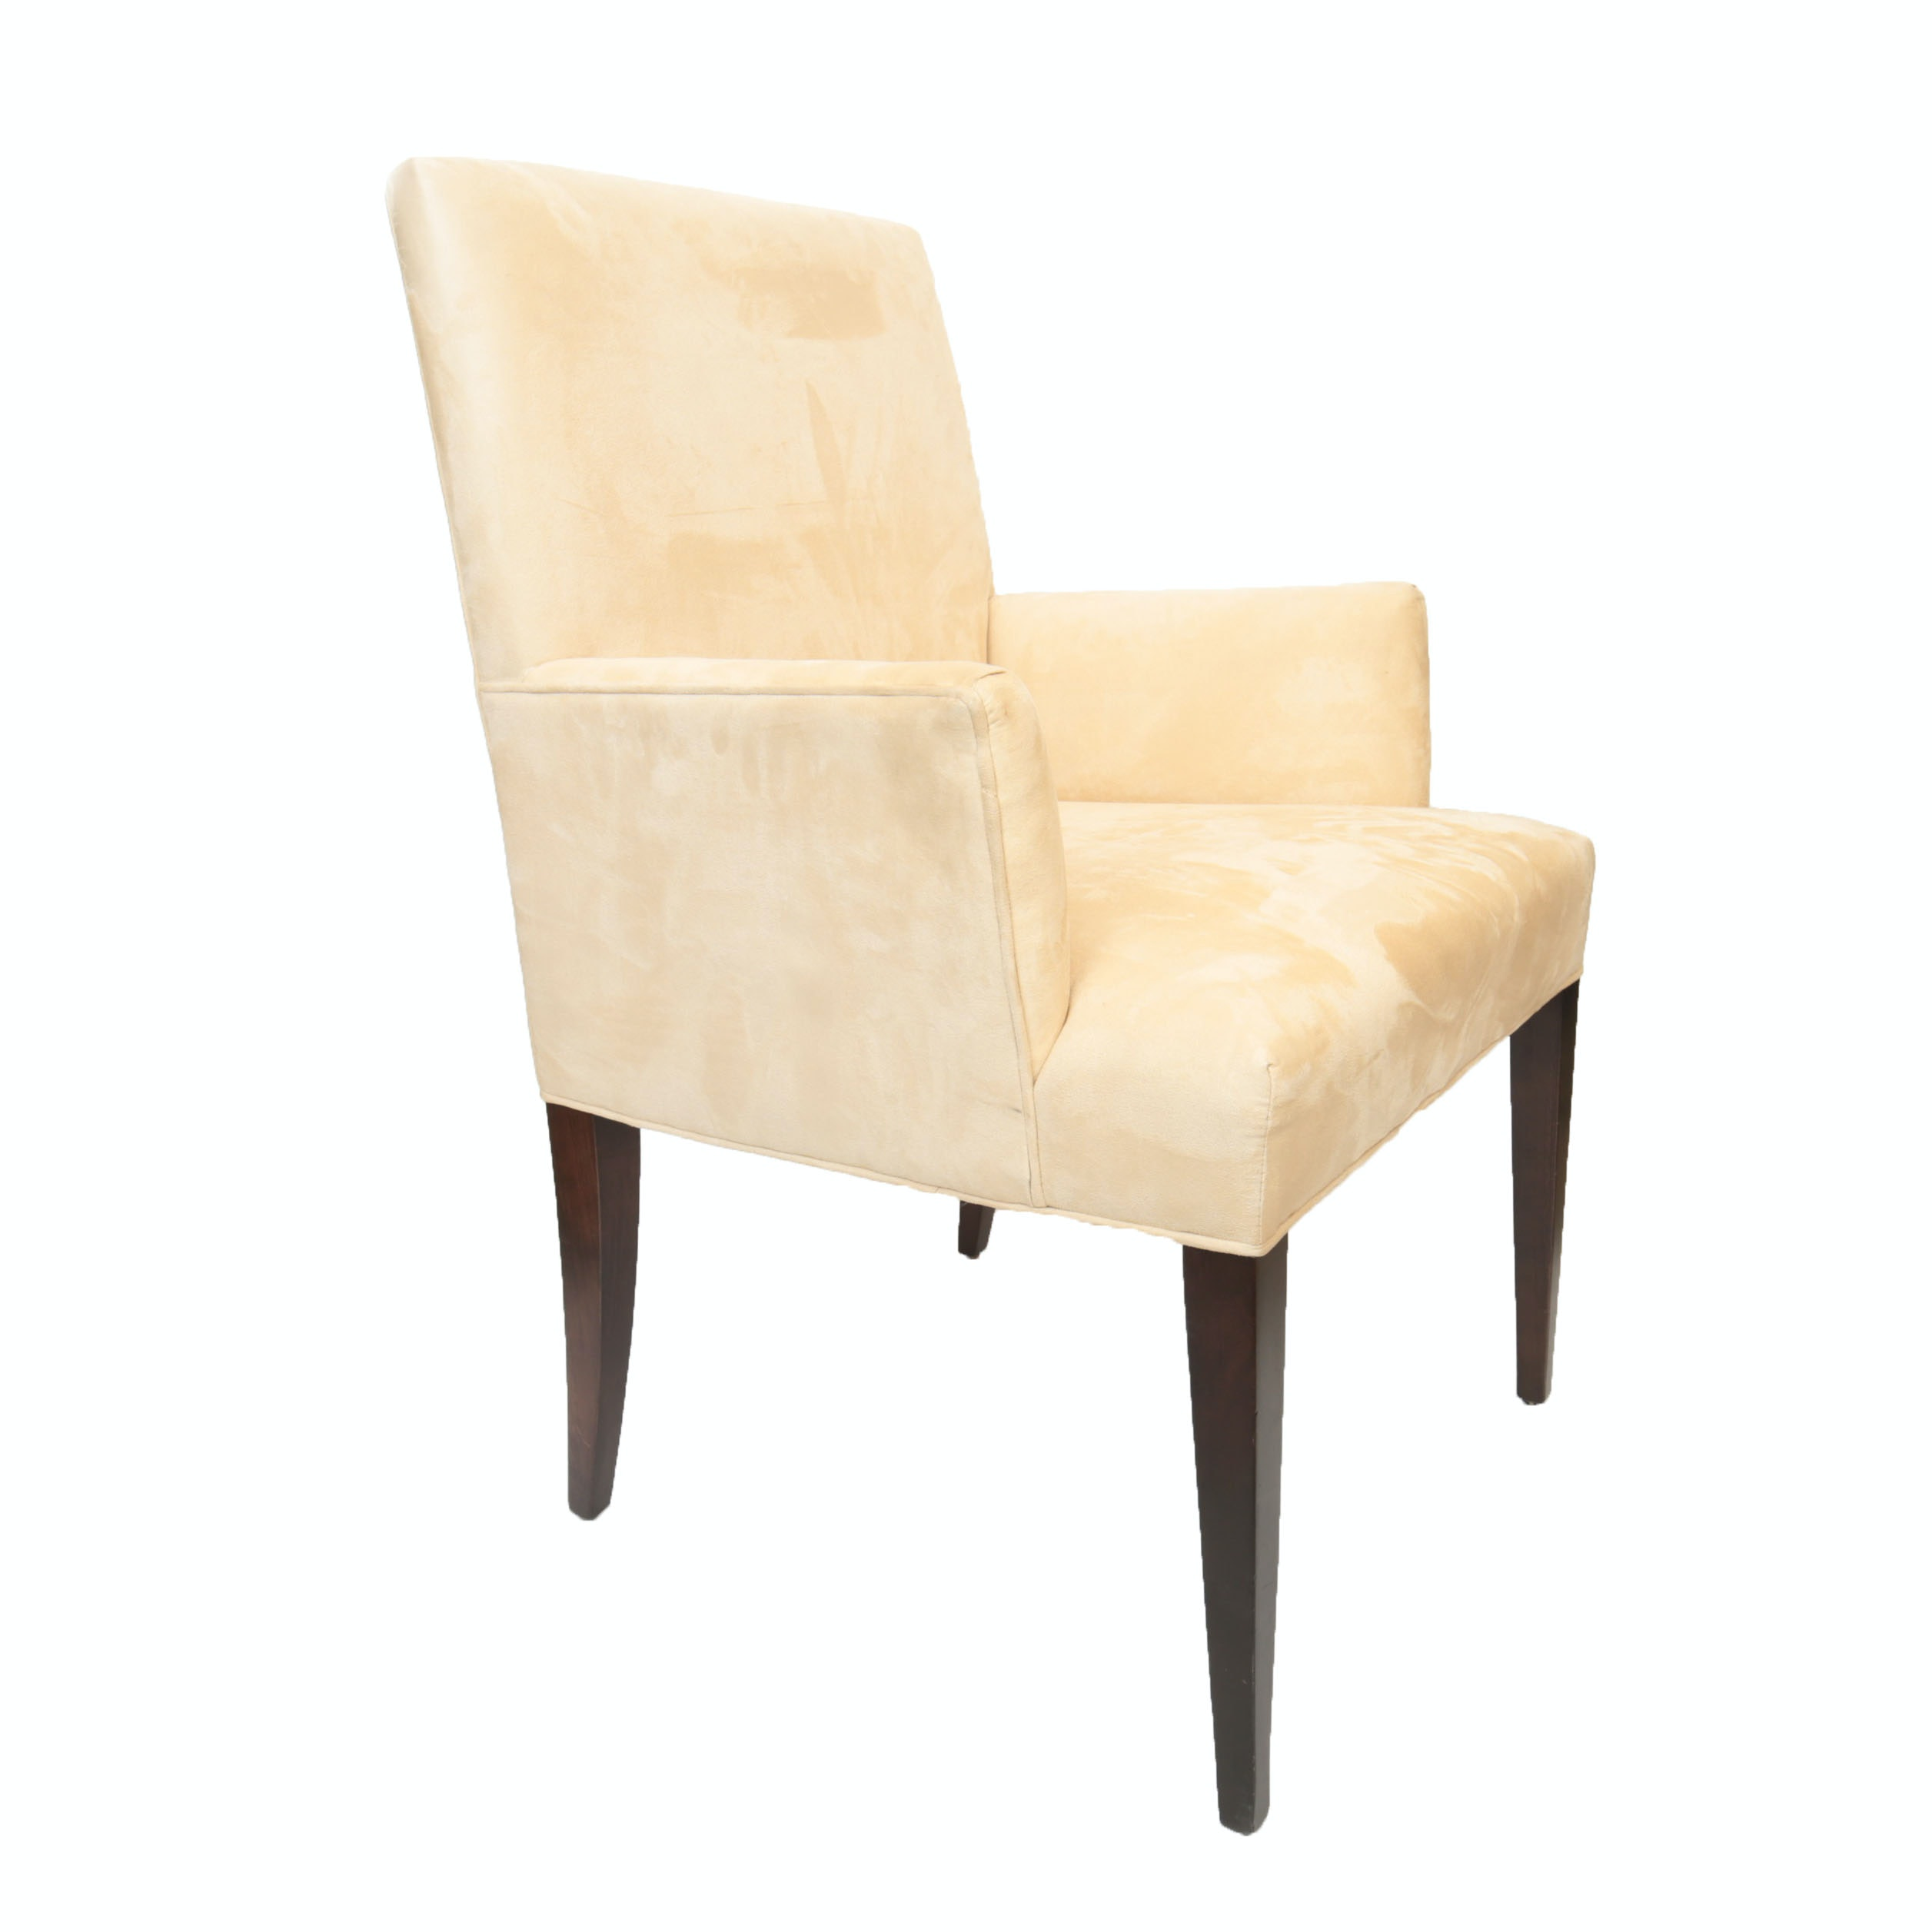 Portfolio Chairs by Crate & Barrel